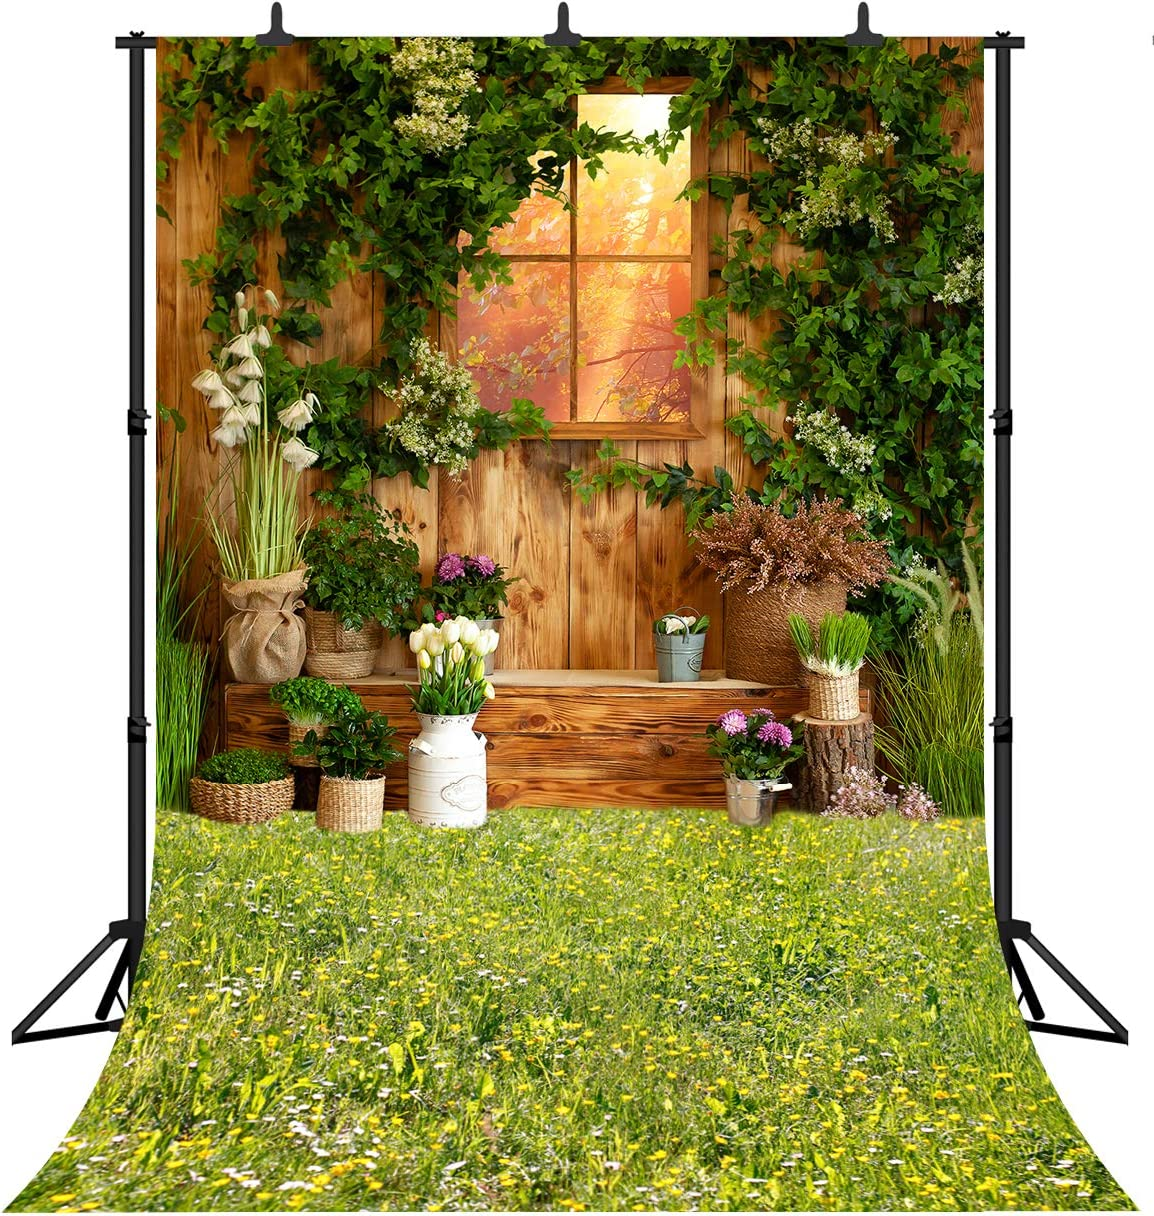 DePhoto Green Leaves Wooden Window Photography Backdrop Nature Scenery Flower Garden Birthday Party Wedding Portrait Video Photo Background Photo Studio PGT620A 5x7ft